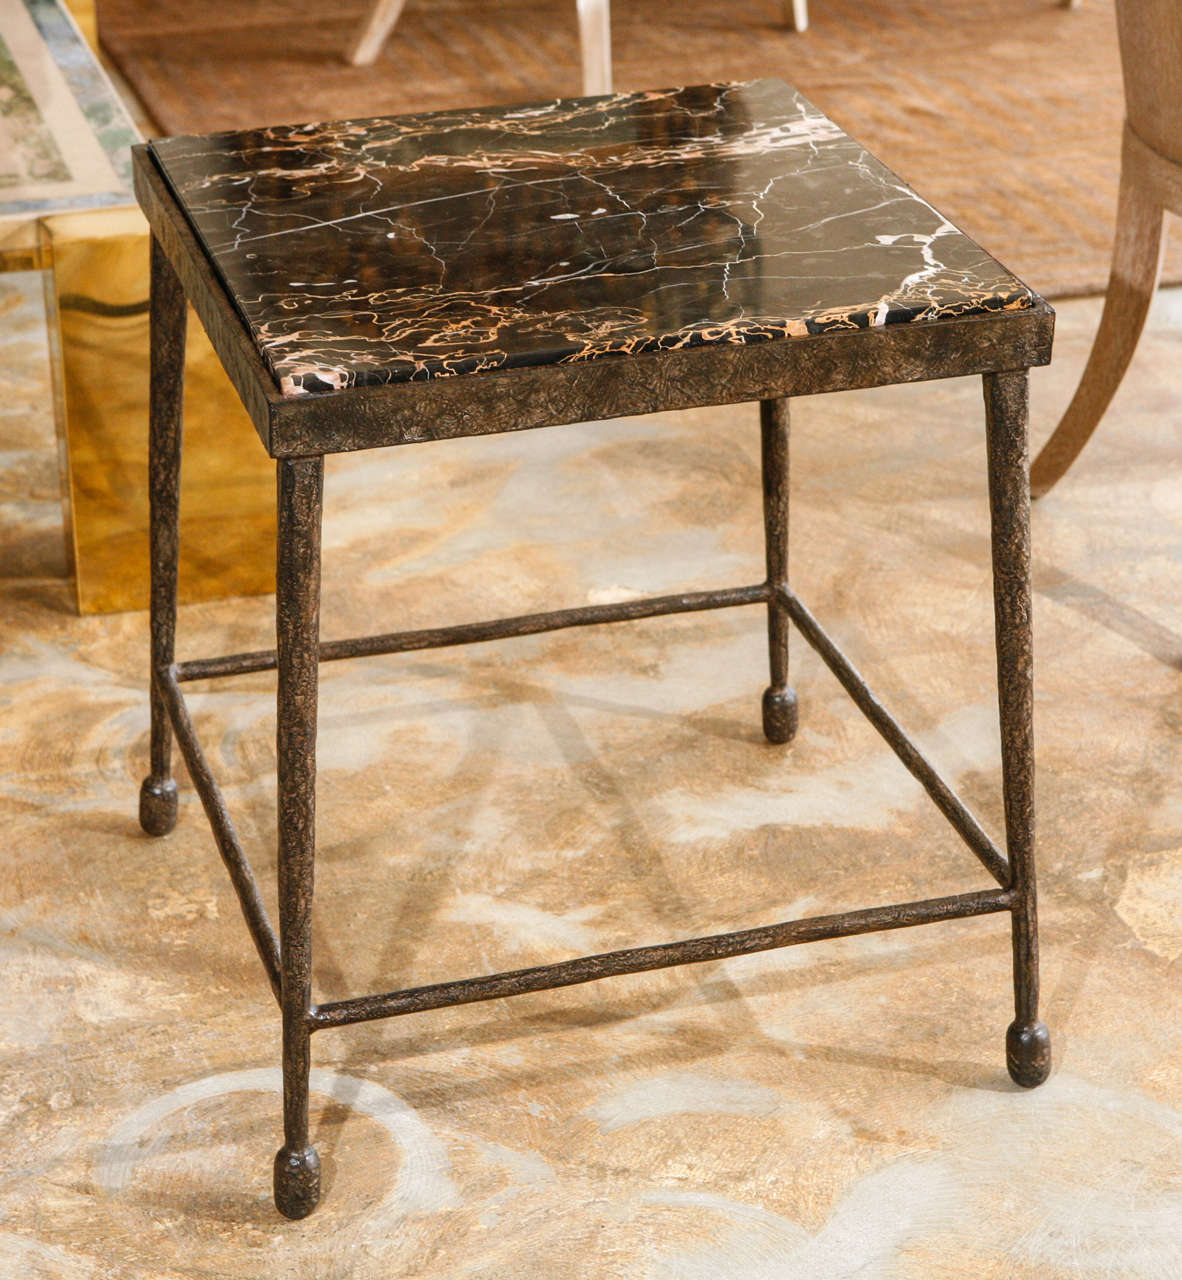 Modern, organic stone and textured iron side table. Giacometti flare. Single as shown in stock. Price is for the single table in stock, and the stone is no longer available. Also available to order with other top materials (see our separate listing